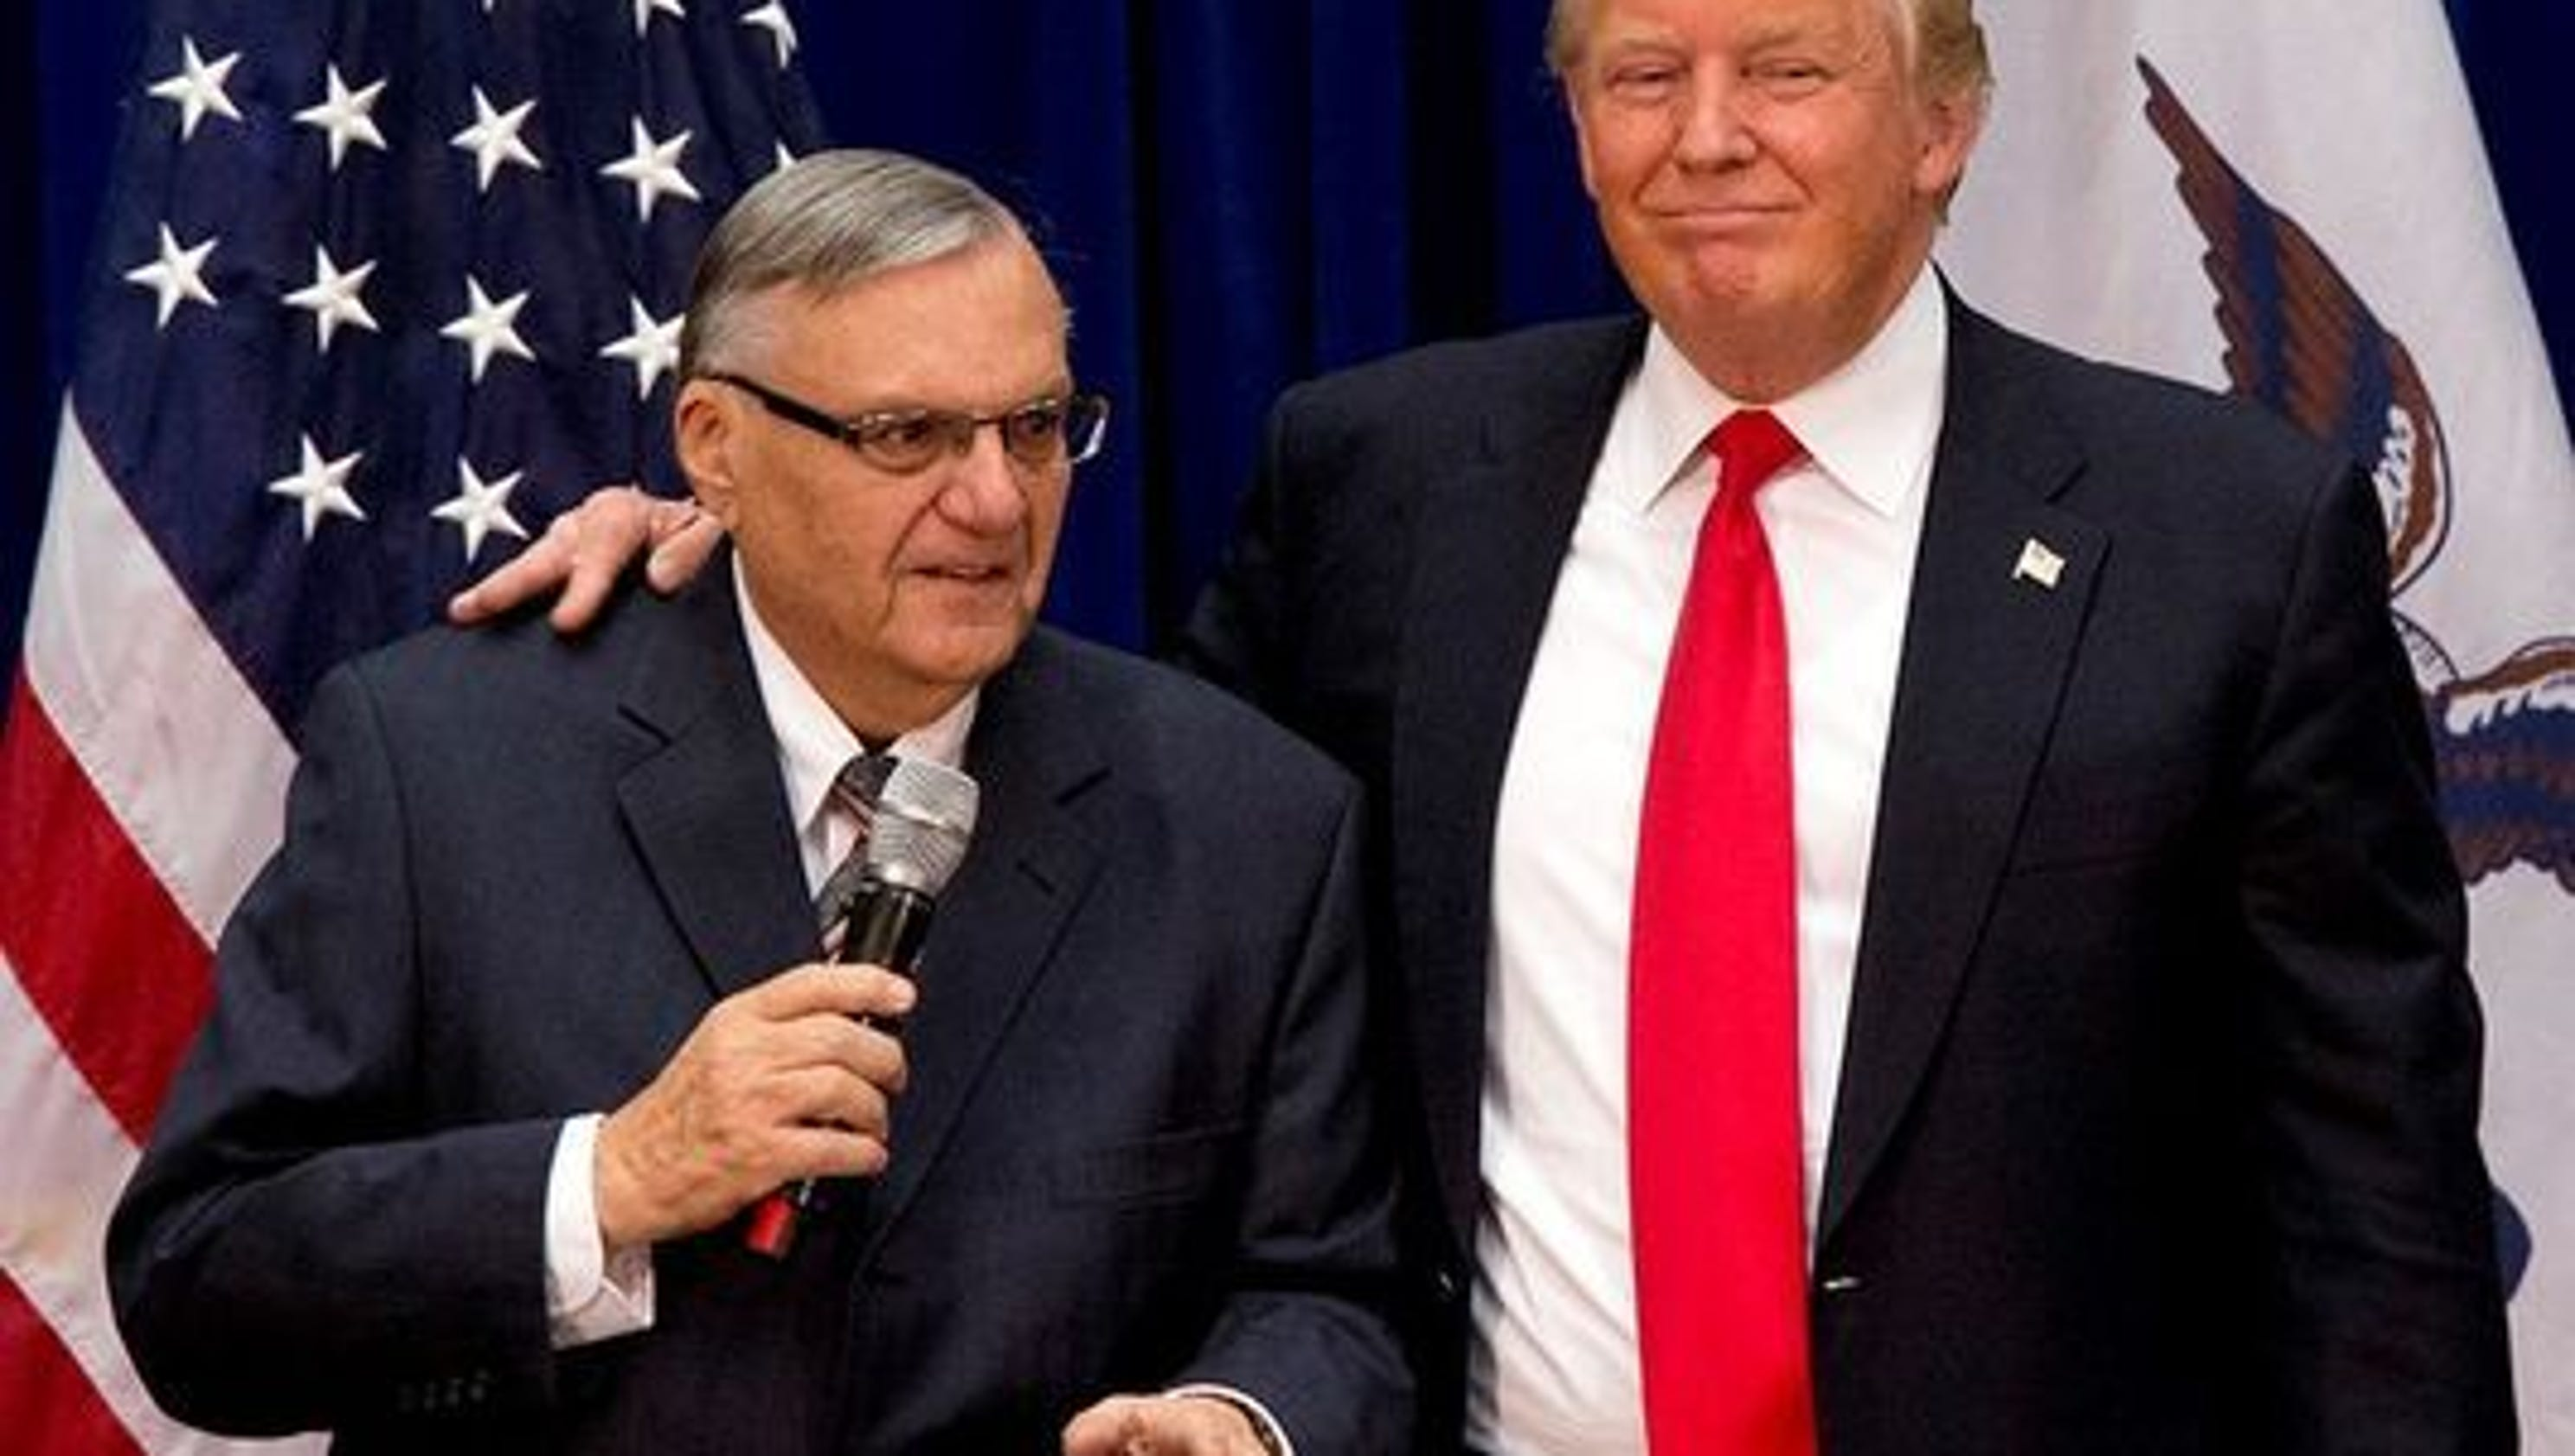 Joe arpaio says hell resume hunt for obamas birth certificate 1betcityfo Gallery